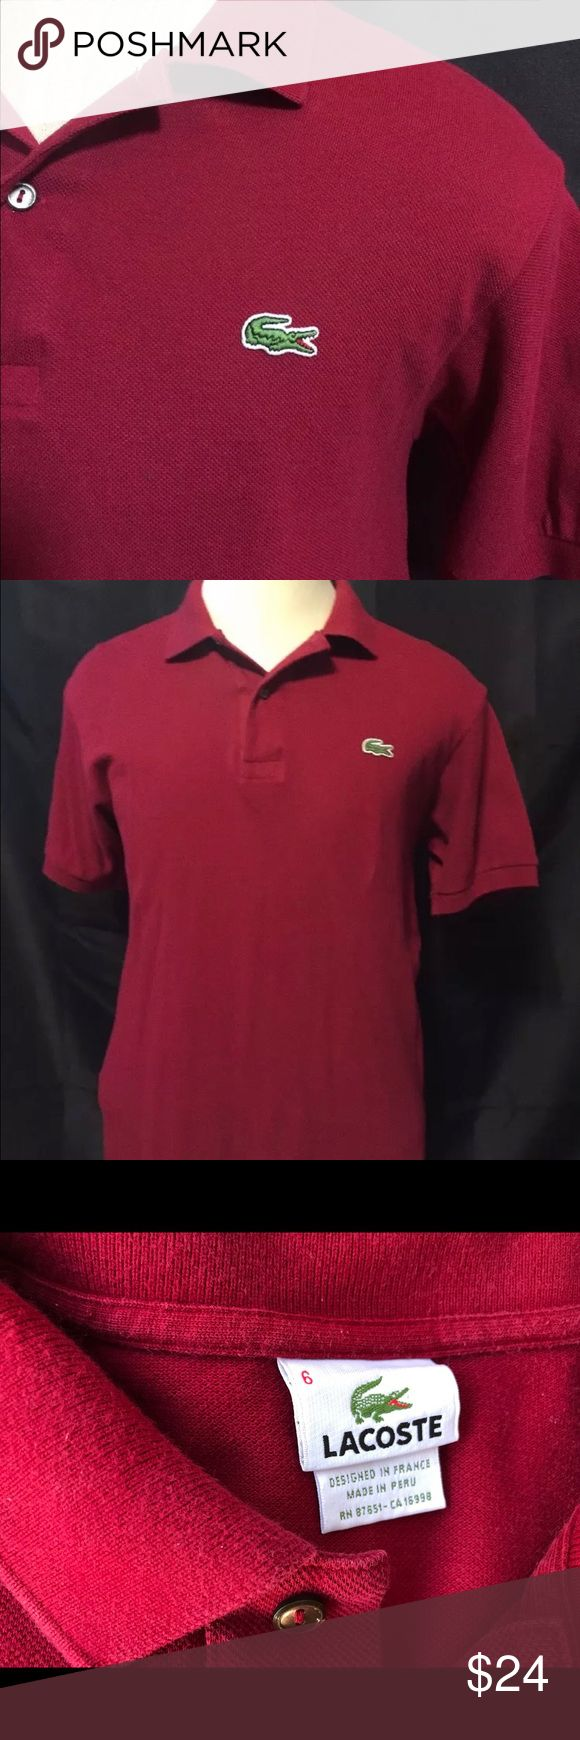 Lacoste Polo Shirt Size 6 Lacoste classic pisque Polo size 6 regular fit designed in France made in Peru . preowned but in good condition Lacoste Shirts Polos